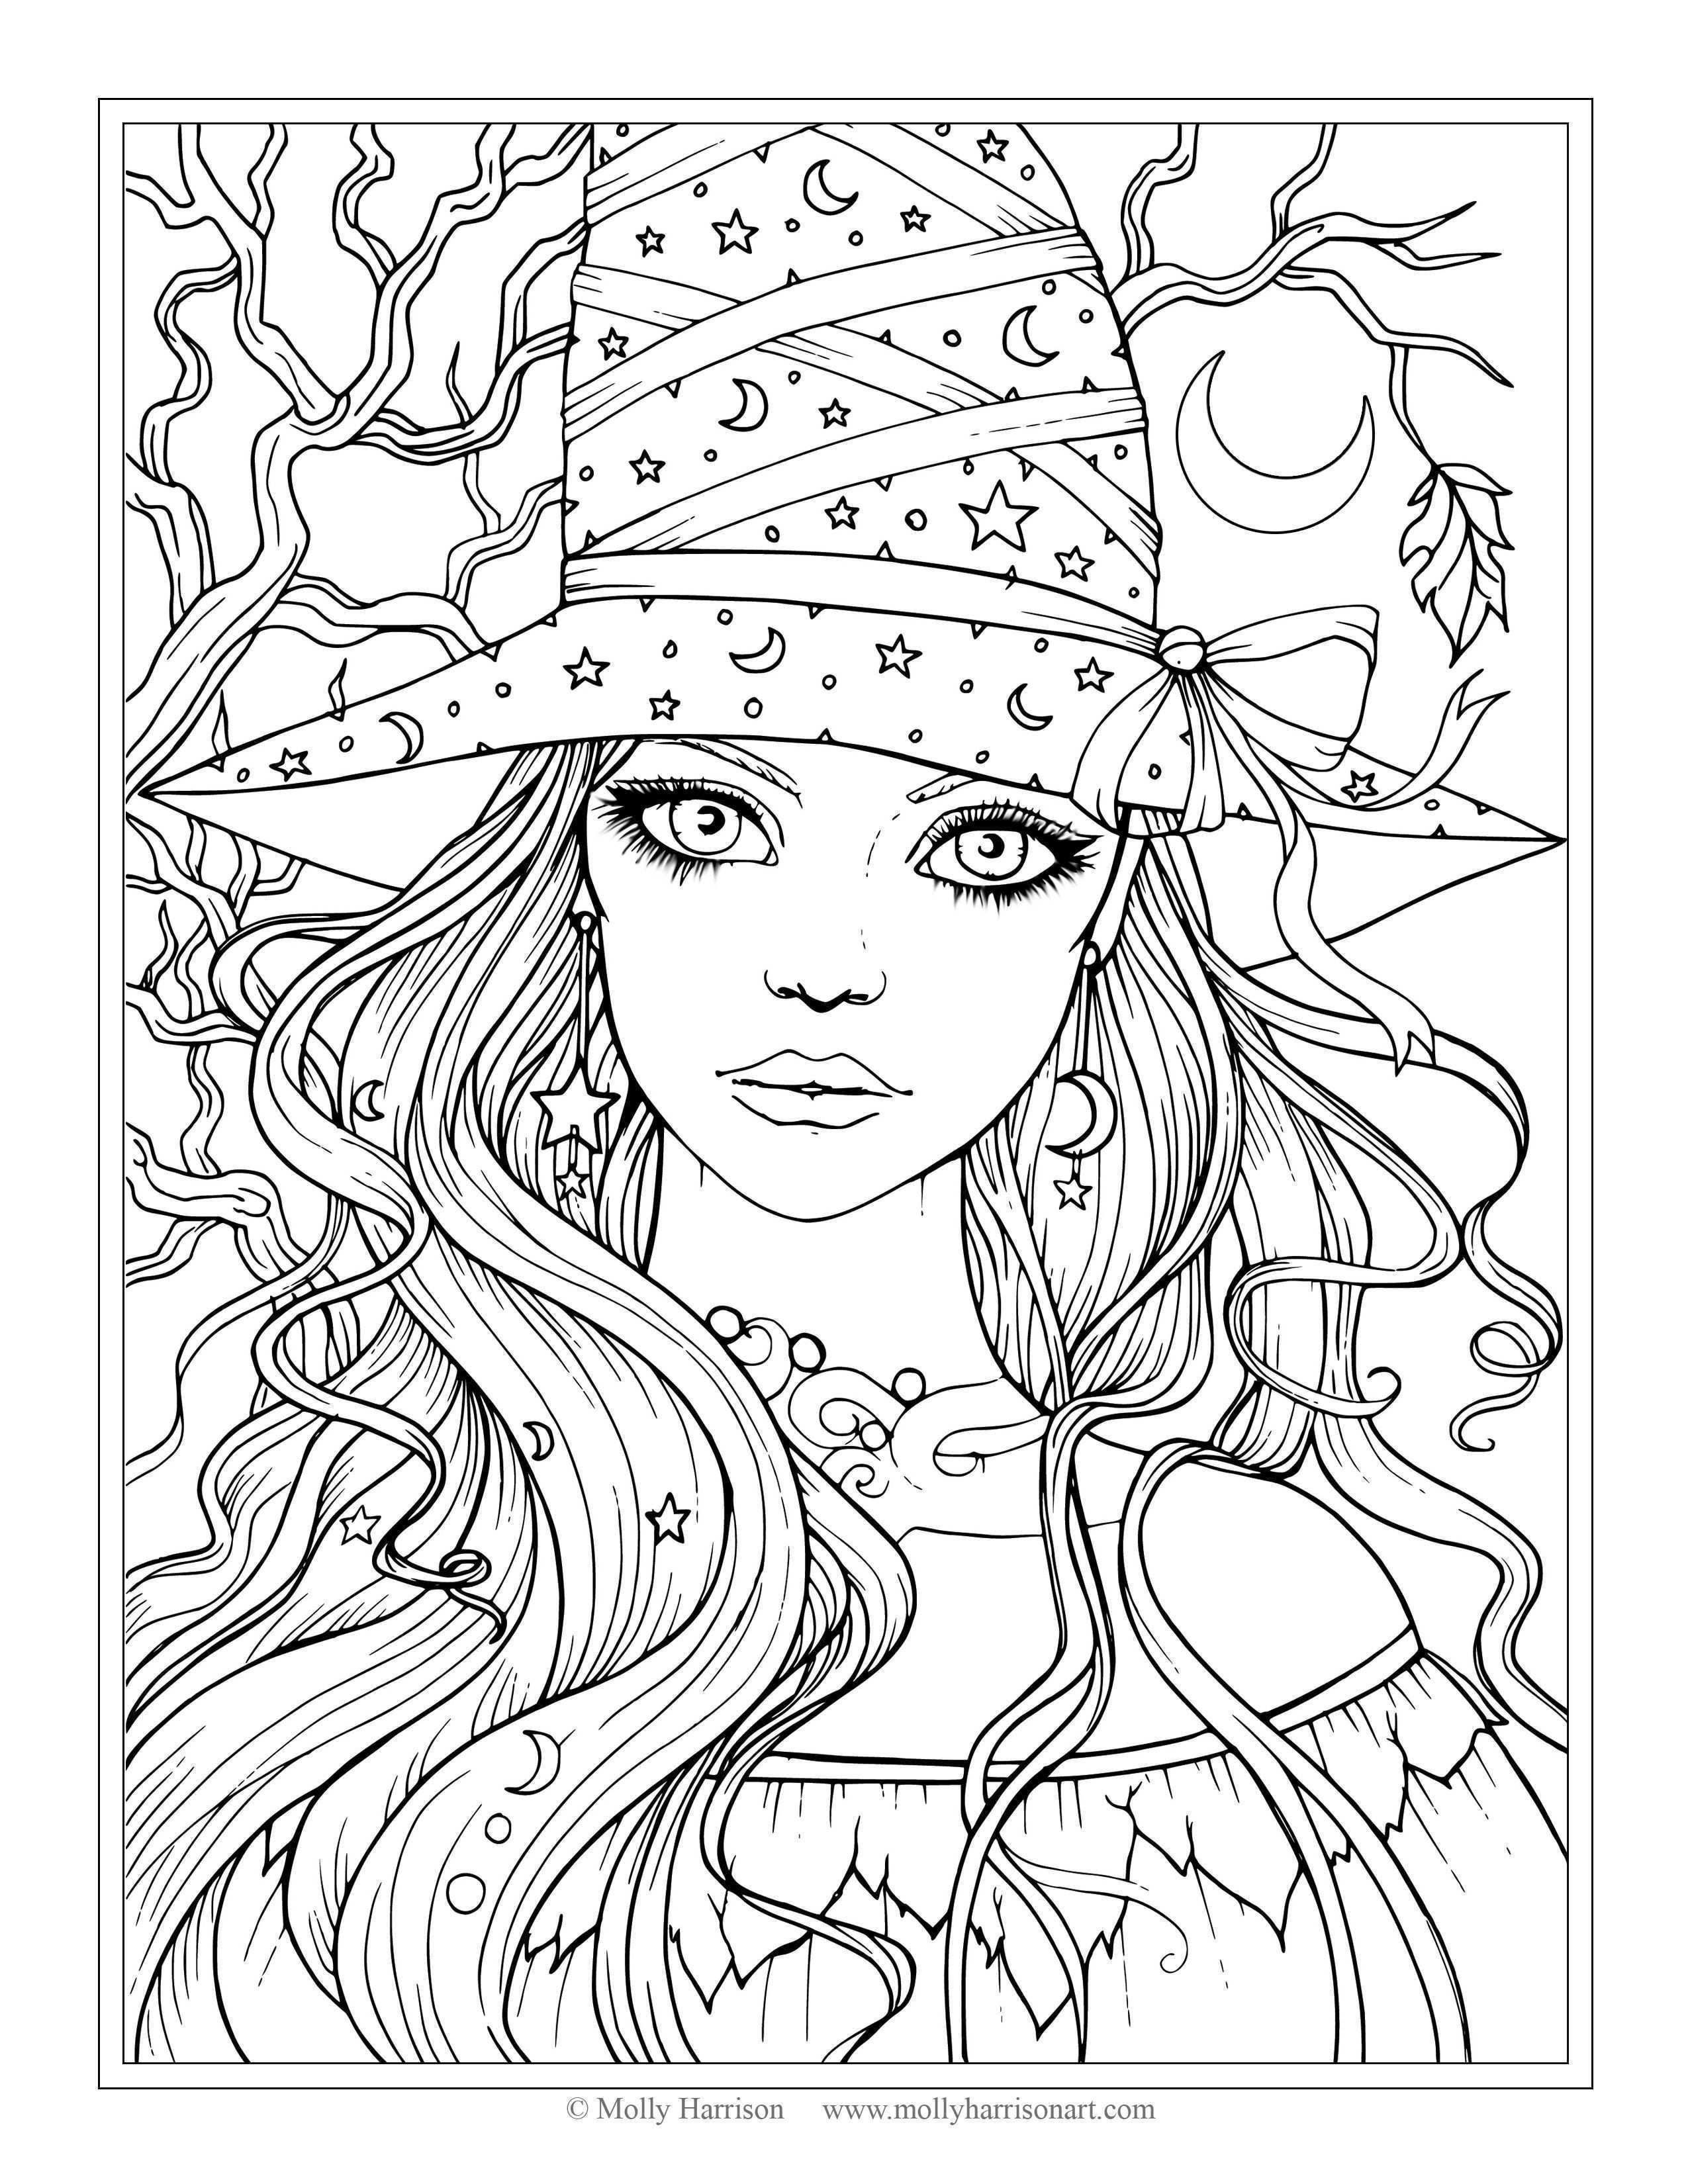 Fantasy Coloring Pages Luxury Cool Coloring Page Unique Witch